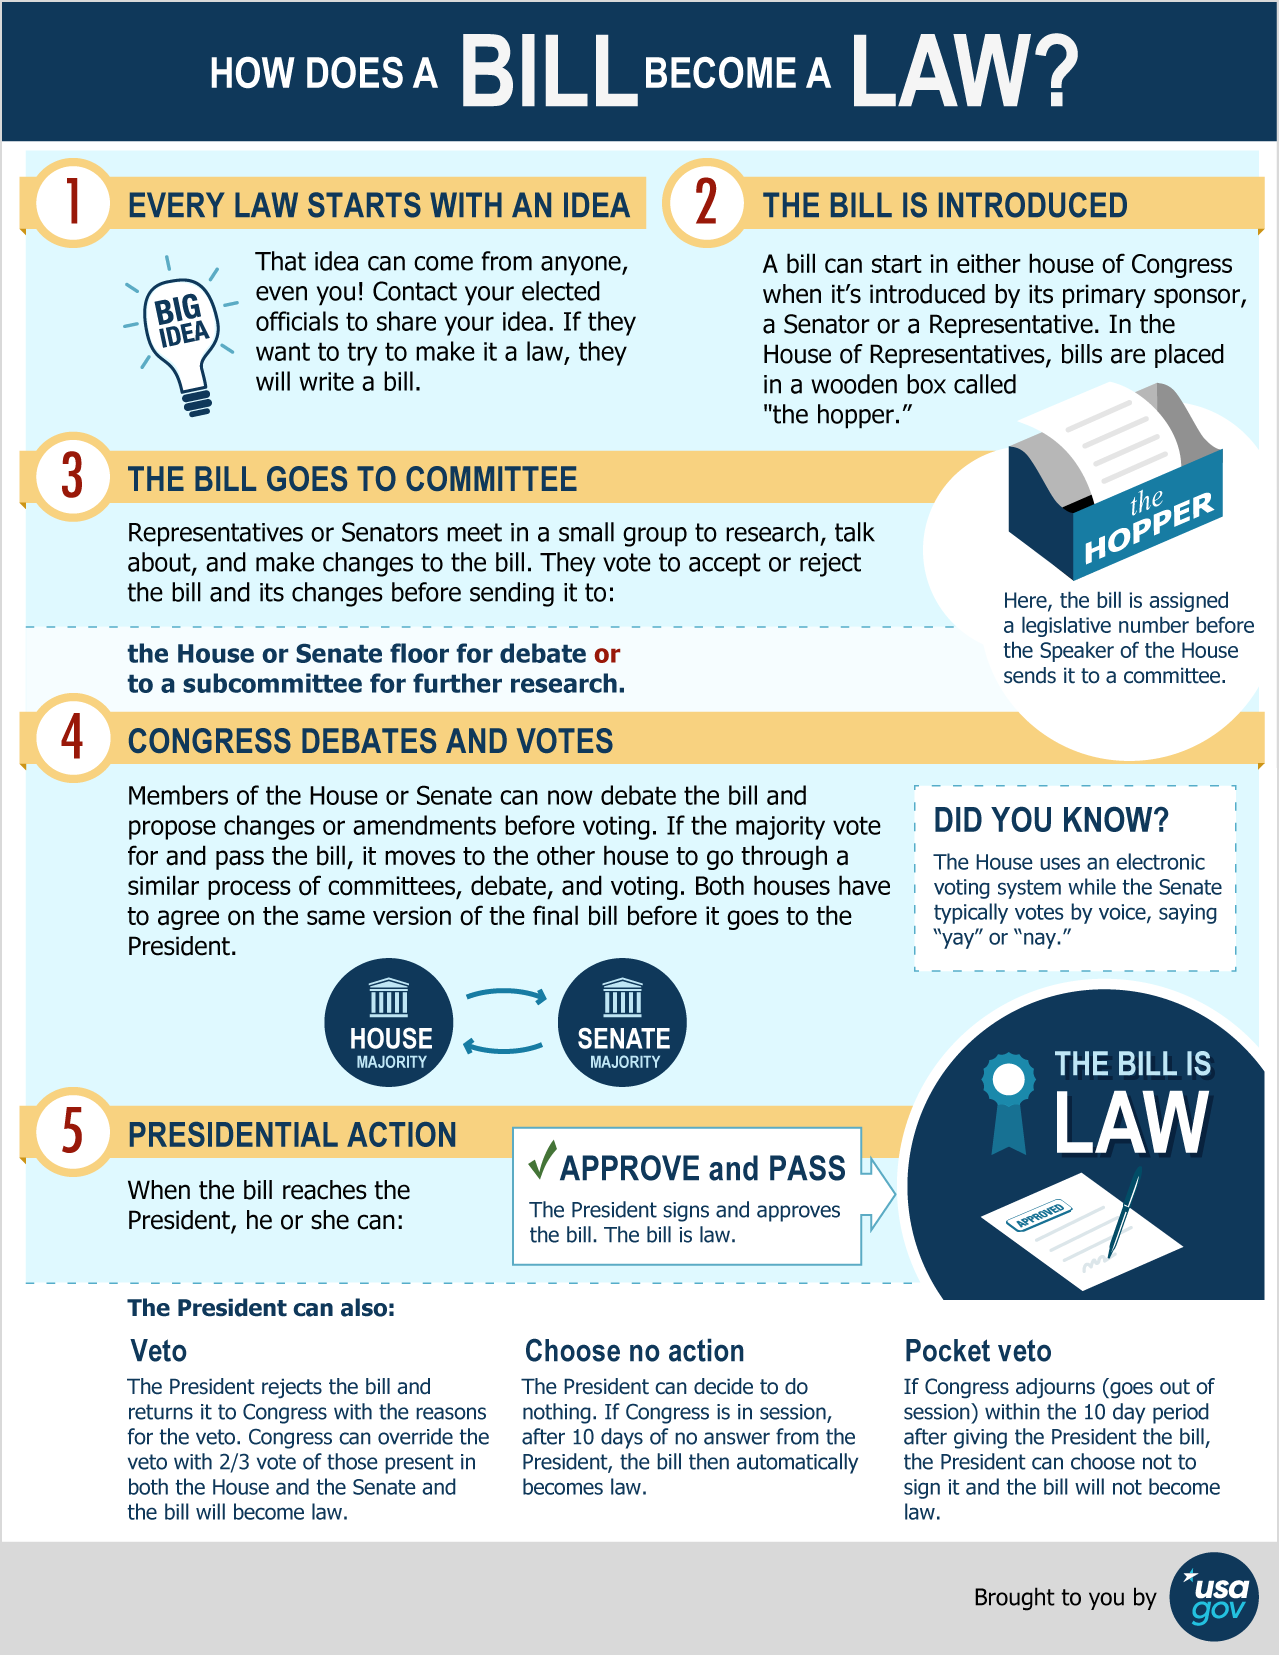 How a Bill Becomes a Law infographic see link below for text